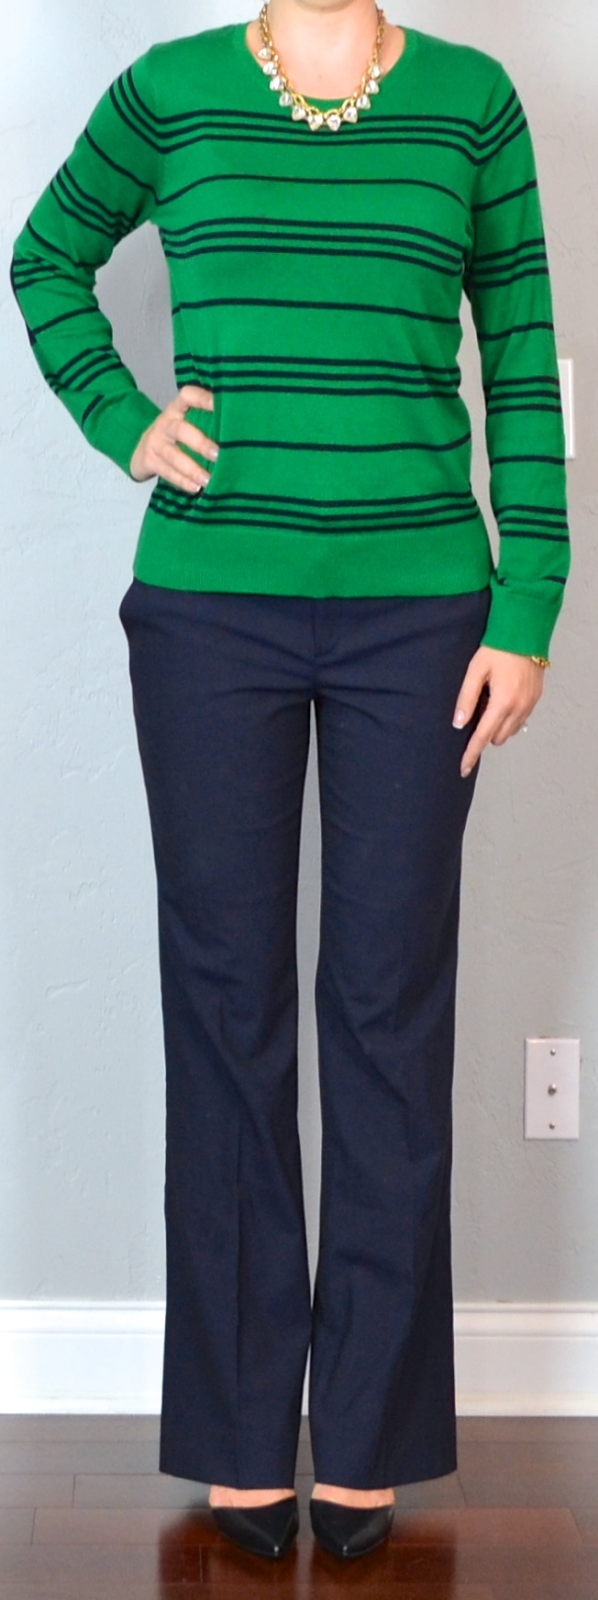 Outfit post green u0026 navy striped sweater navy work pants black pointy toed pumps crystal ...